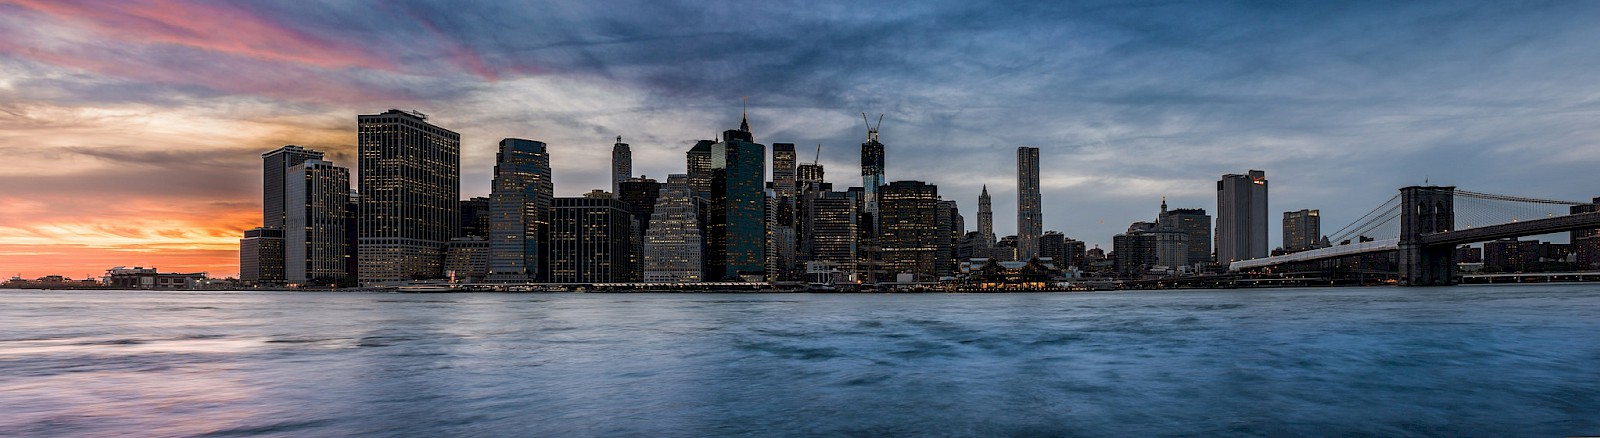 New York City skyline, by Arn BO at [Flickr](https://flic.kr/p/de9is3)